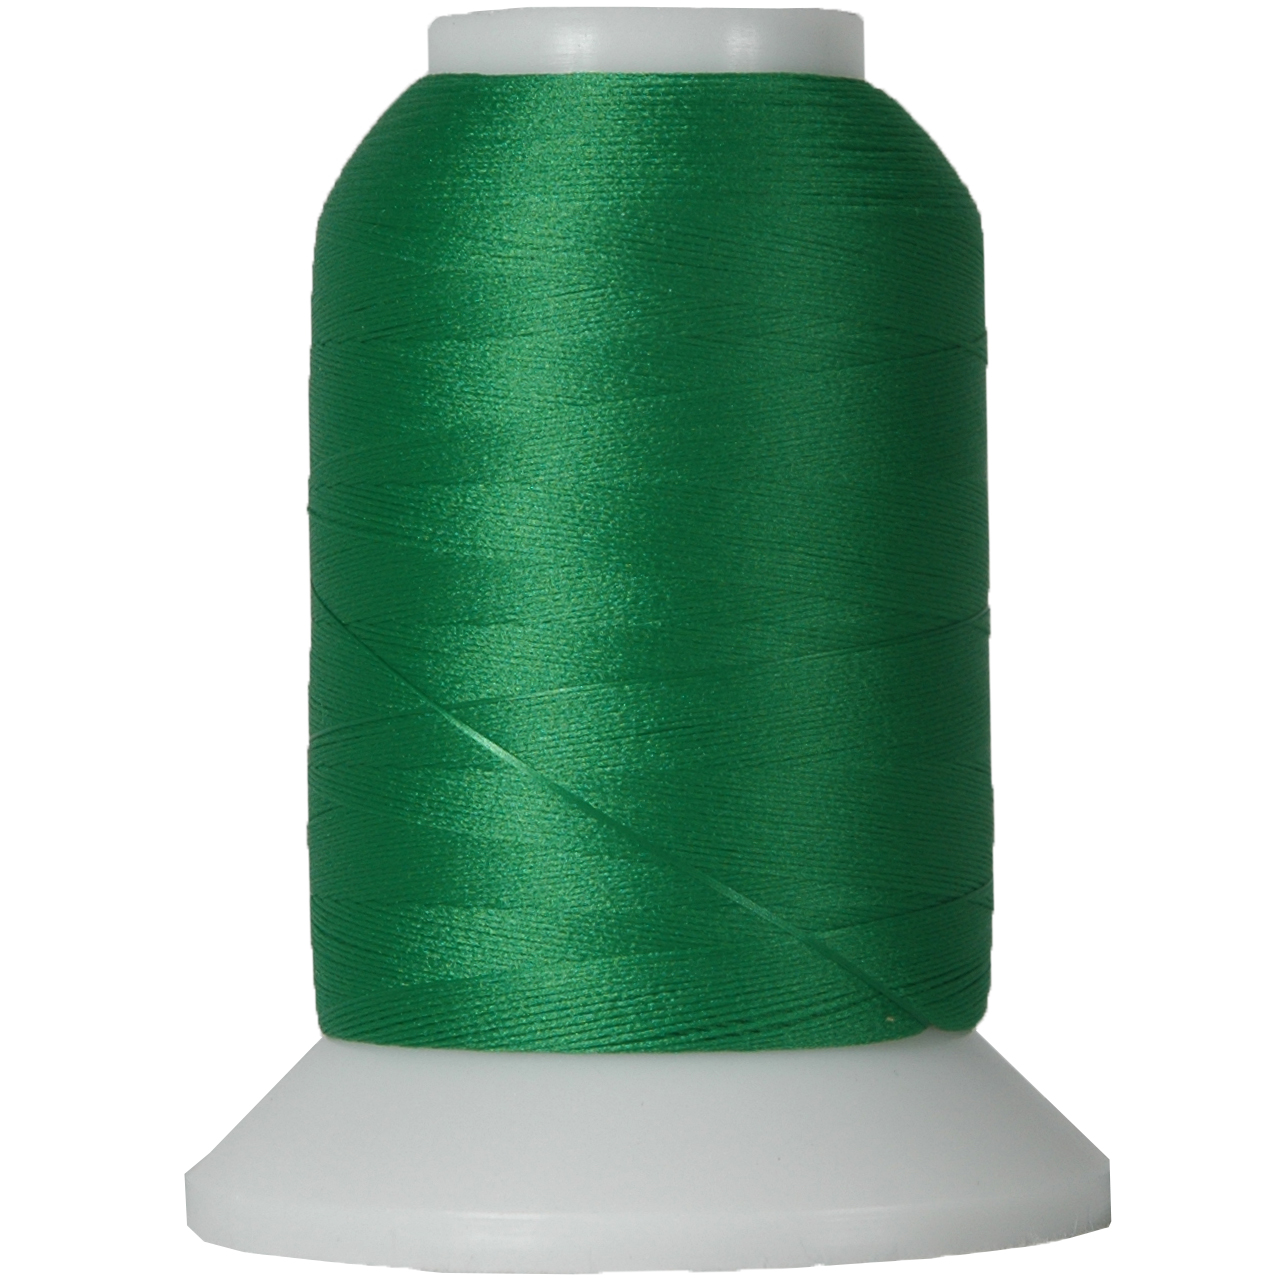 Threadart Wooly Nylon Thread - 1000m Spools - Color 4022 - RED - 50 Colors Available - 3 Spool Packs